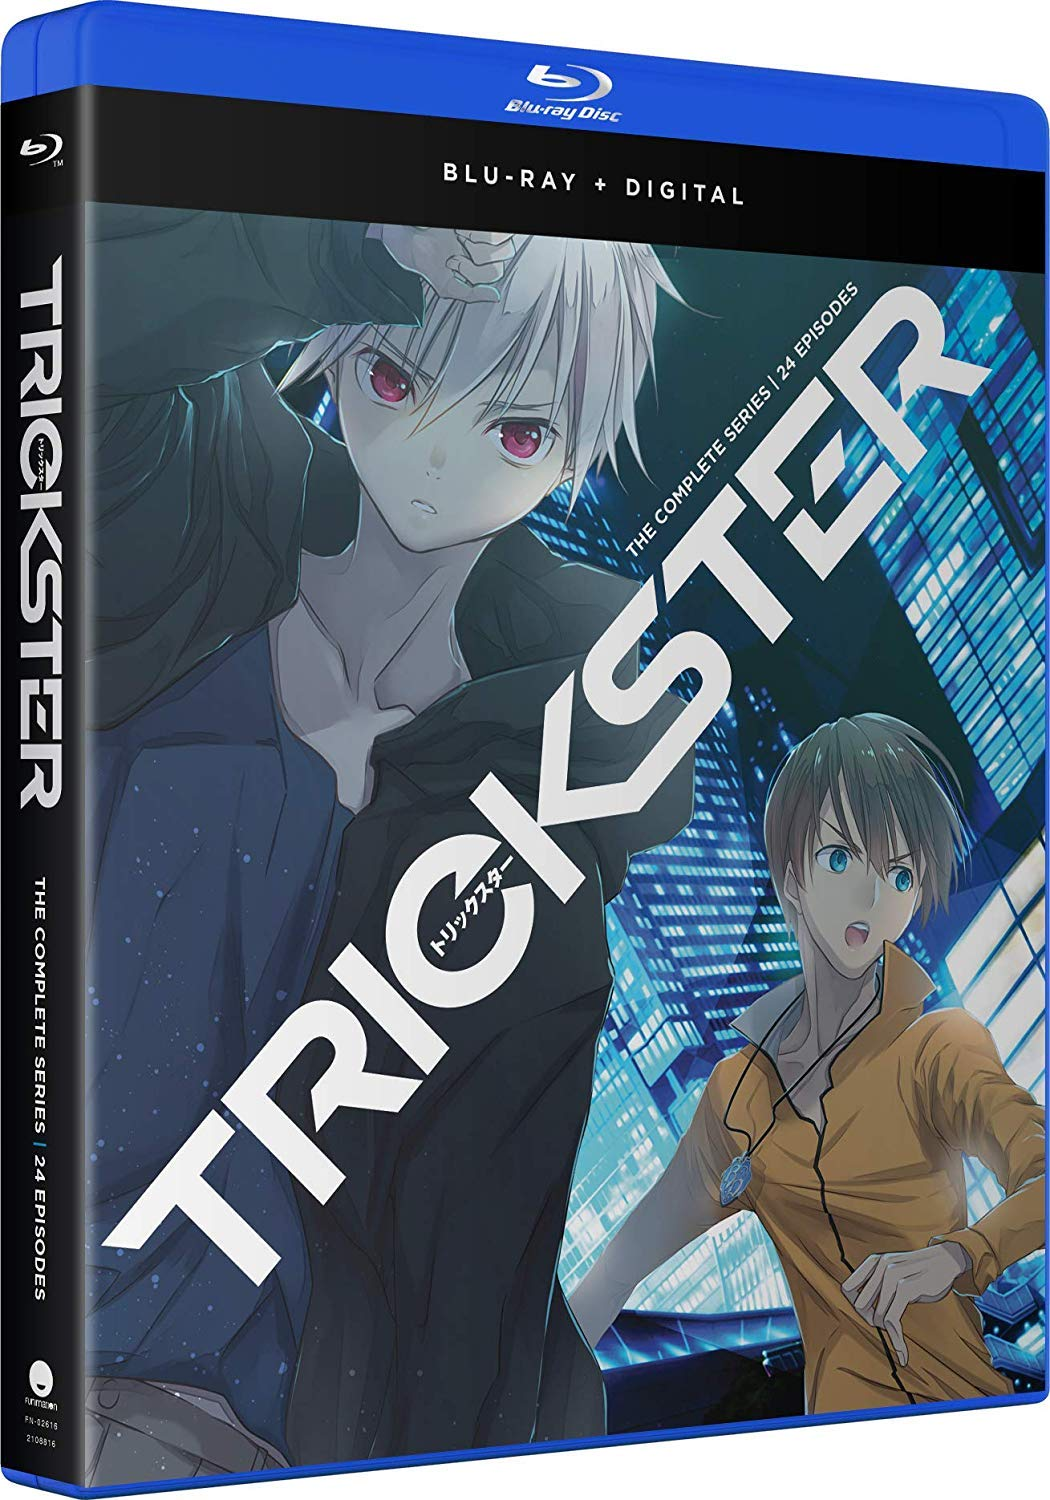 Blu-ray : Trickster: The Complete Series (Boxed Set, Digital Copy)